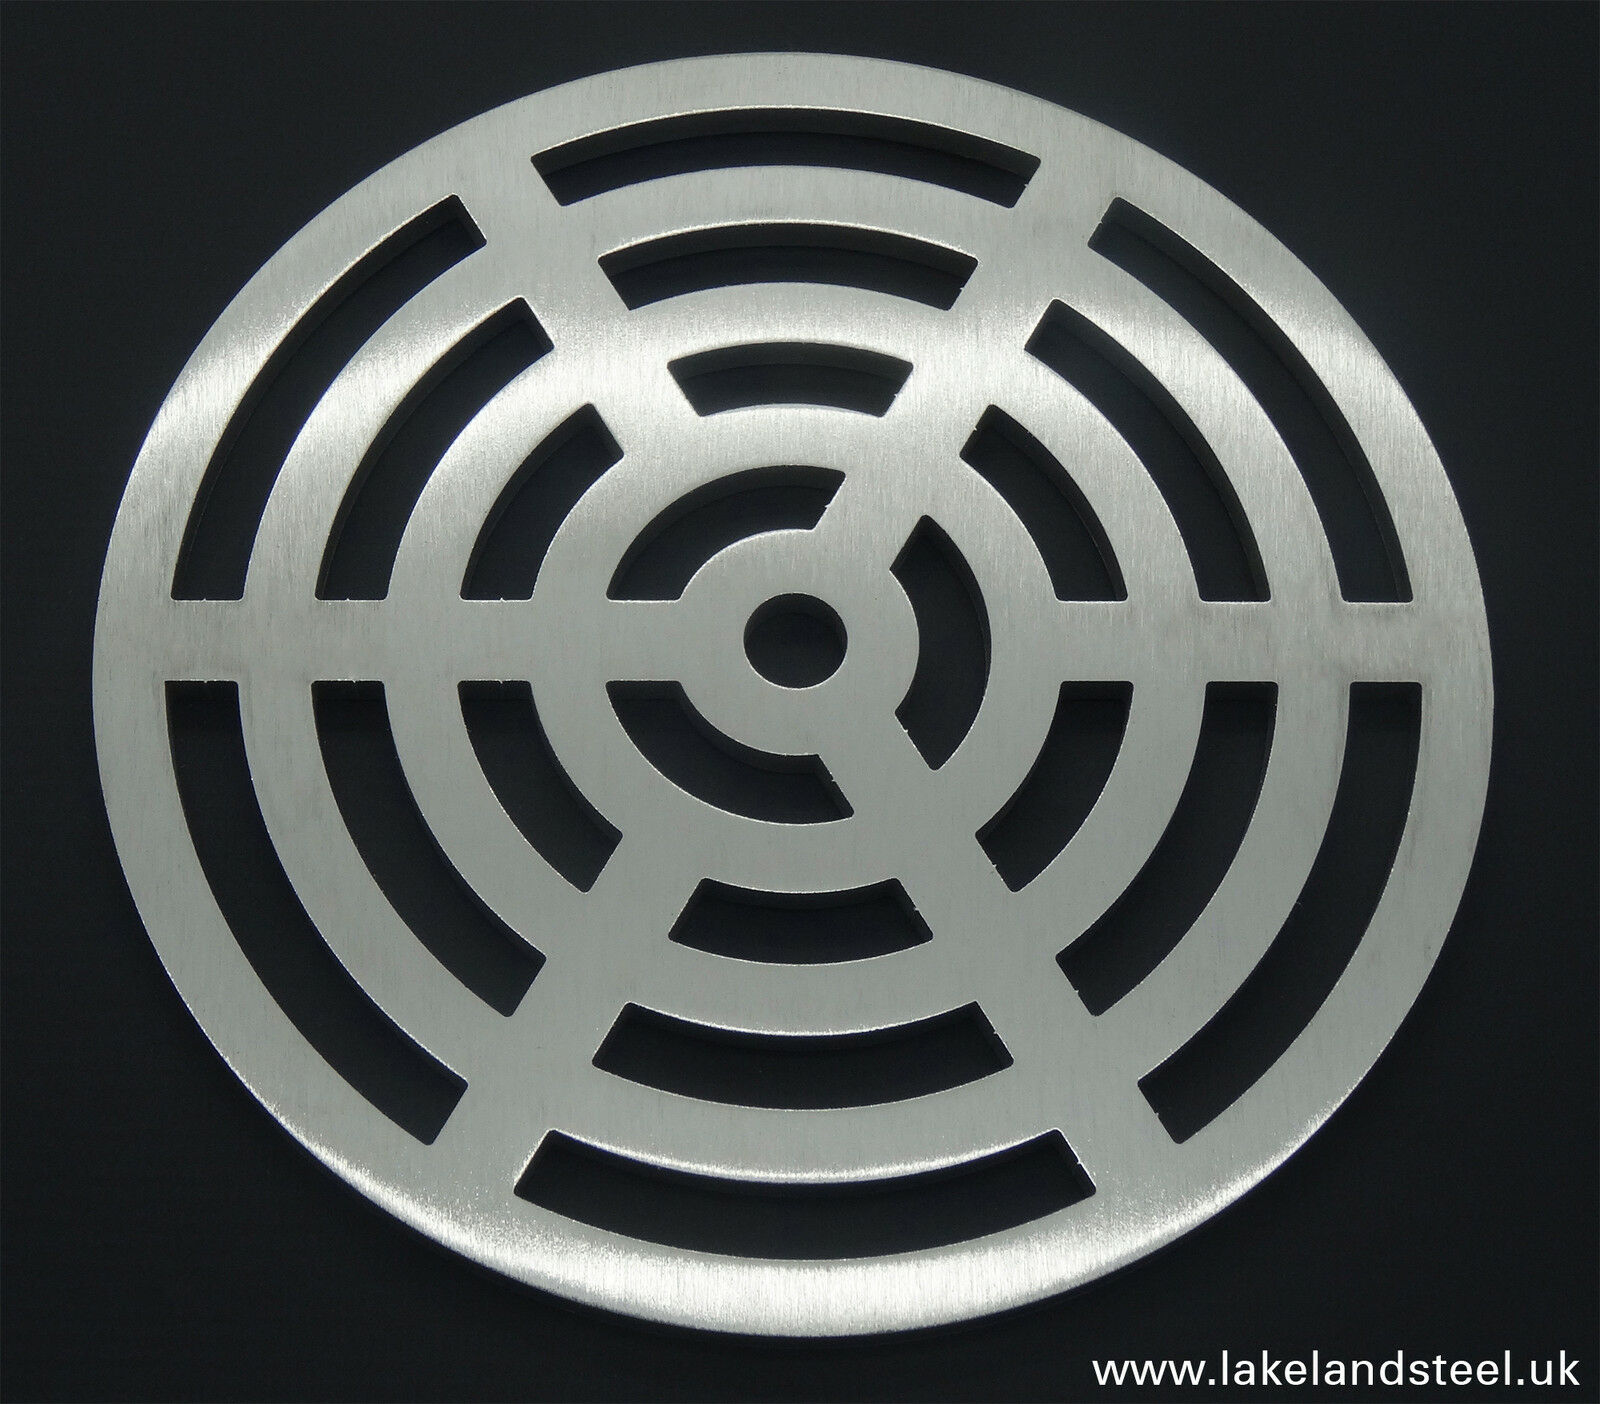 290mm 29cm Round Stainless steel metal heavy duty drain cover gully grid grate